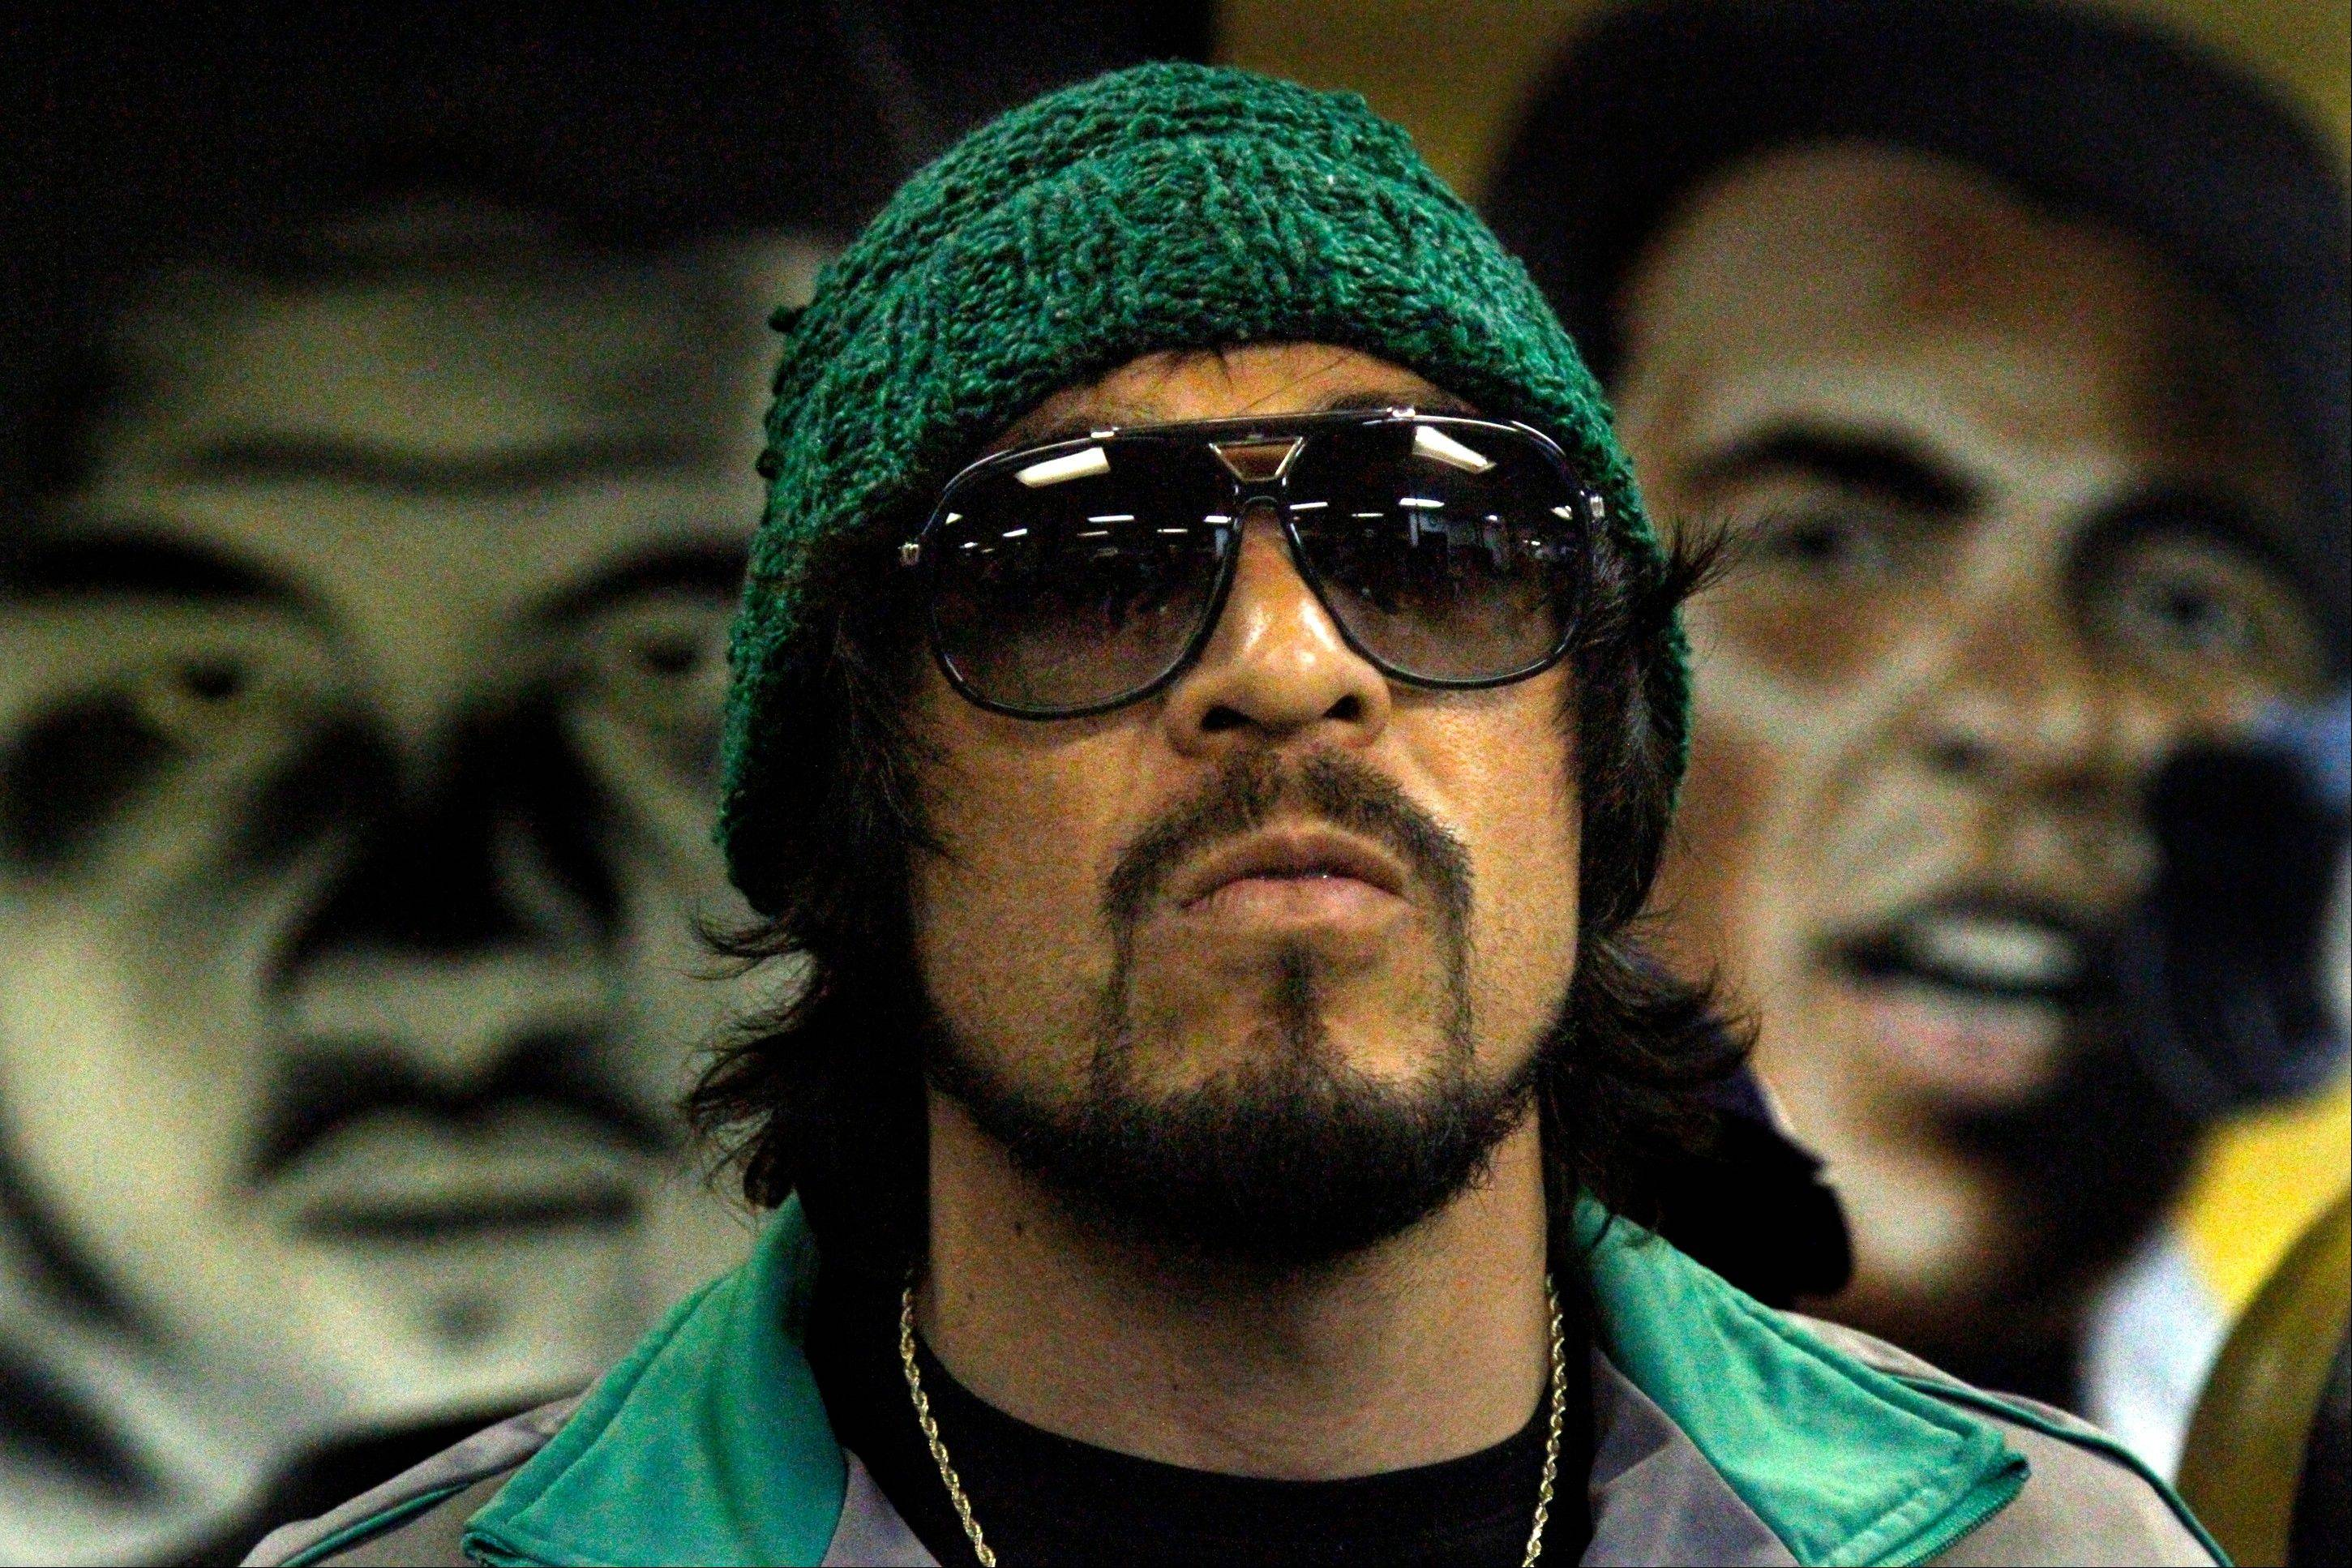 "Three time world champion boxer Antonio Margarito is framed by paintings of boxing greats Joe Louis, left, and Muhammad Ali, right, as he arrives for interviews at Kingsway Boxing Gym on Monday in New York. Margarito will challenge current WBA Super Welterweight World Champion Miguel Cotto in the feature event in a night of boxing billed as ""Cotto Margarito II,"" at Madison Square Garden on Saturday."